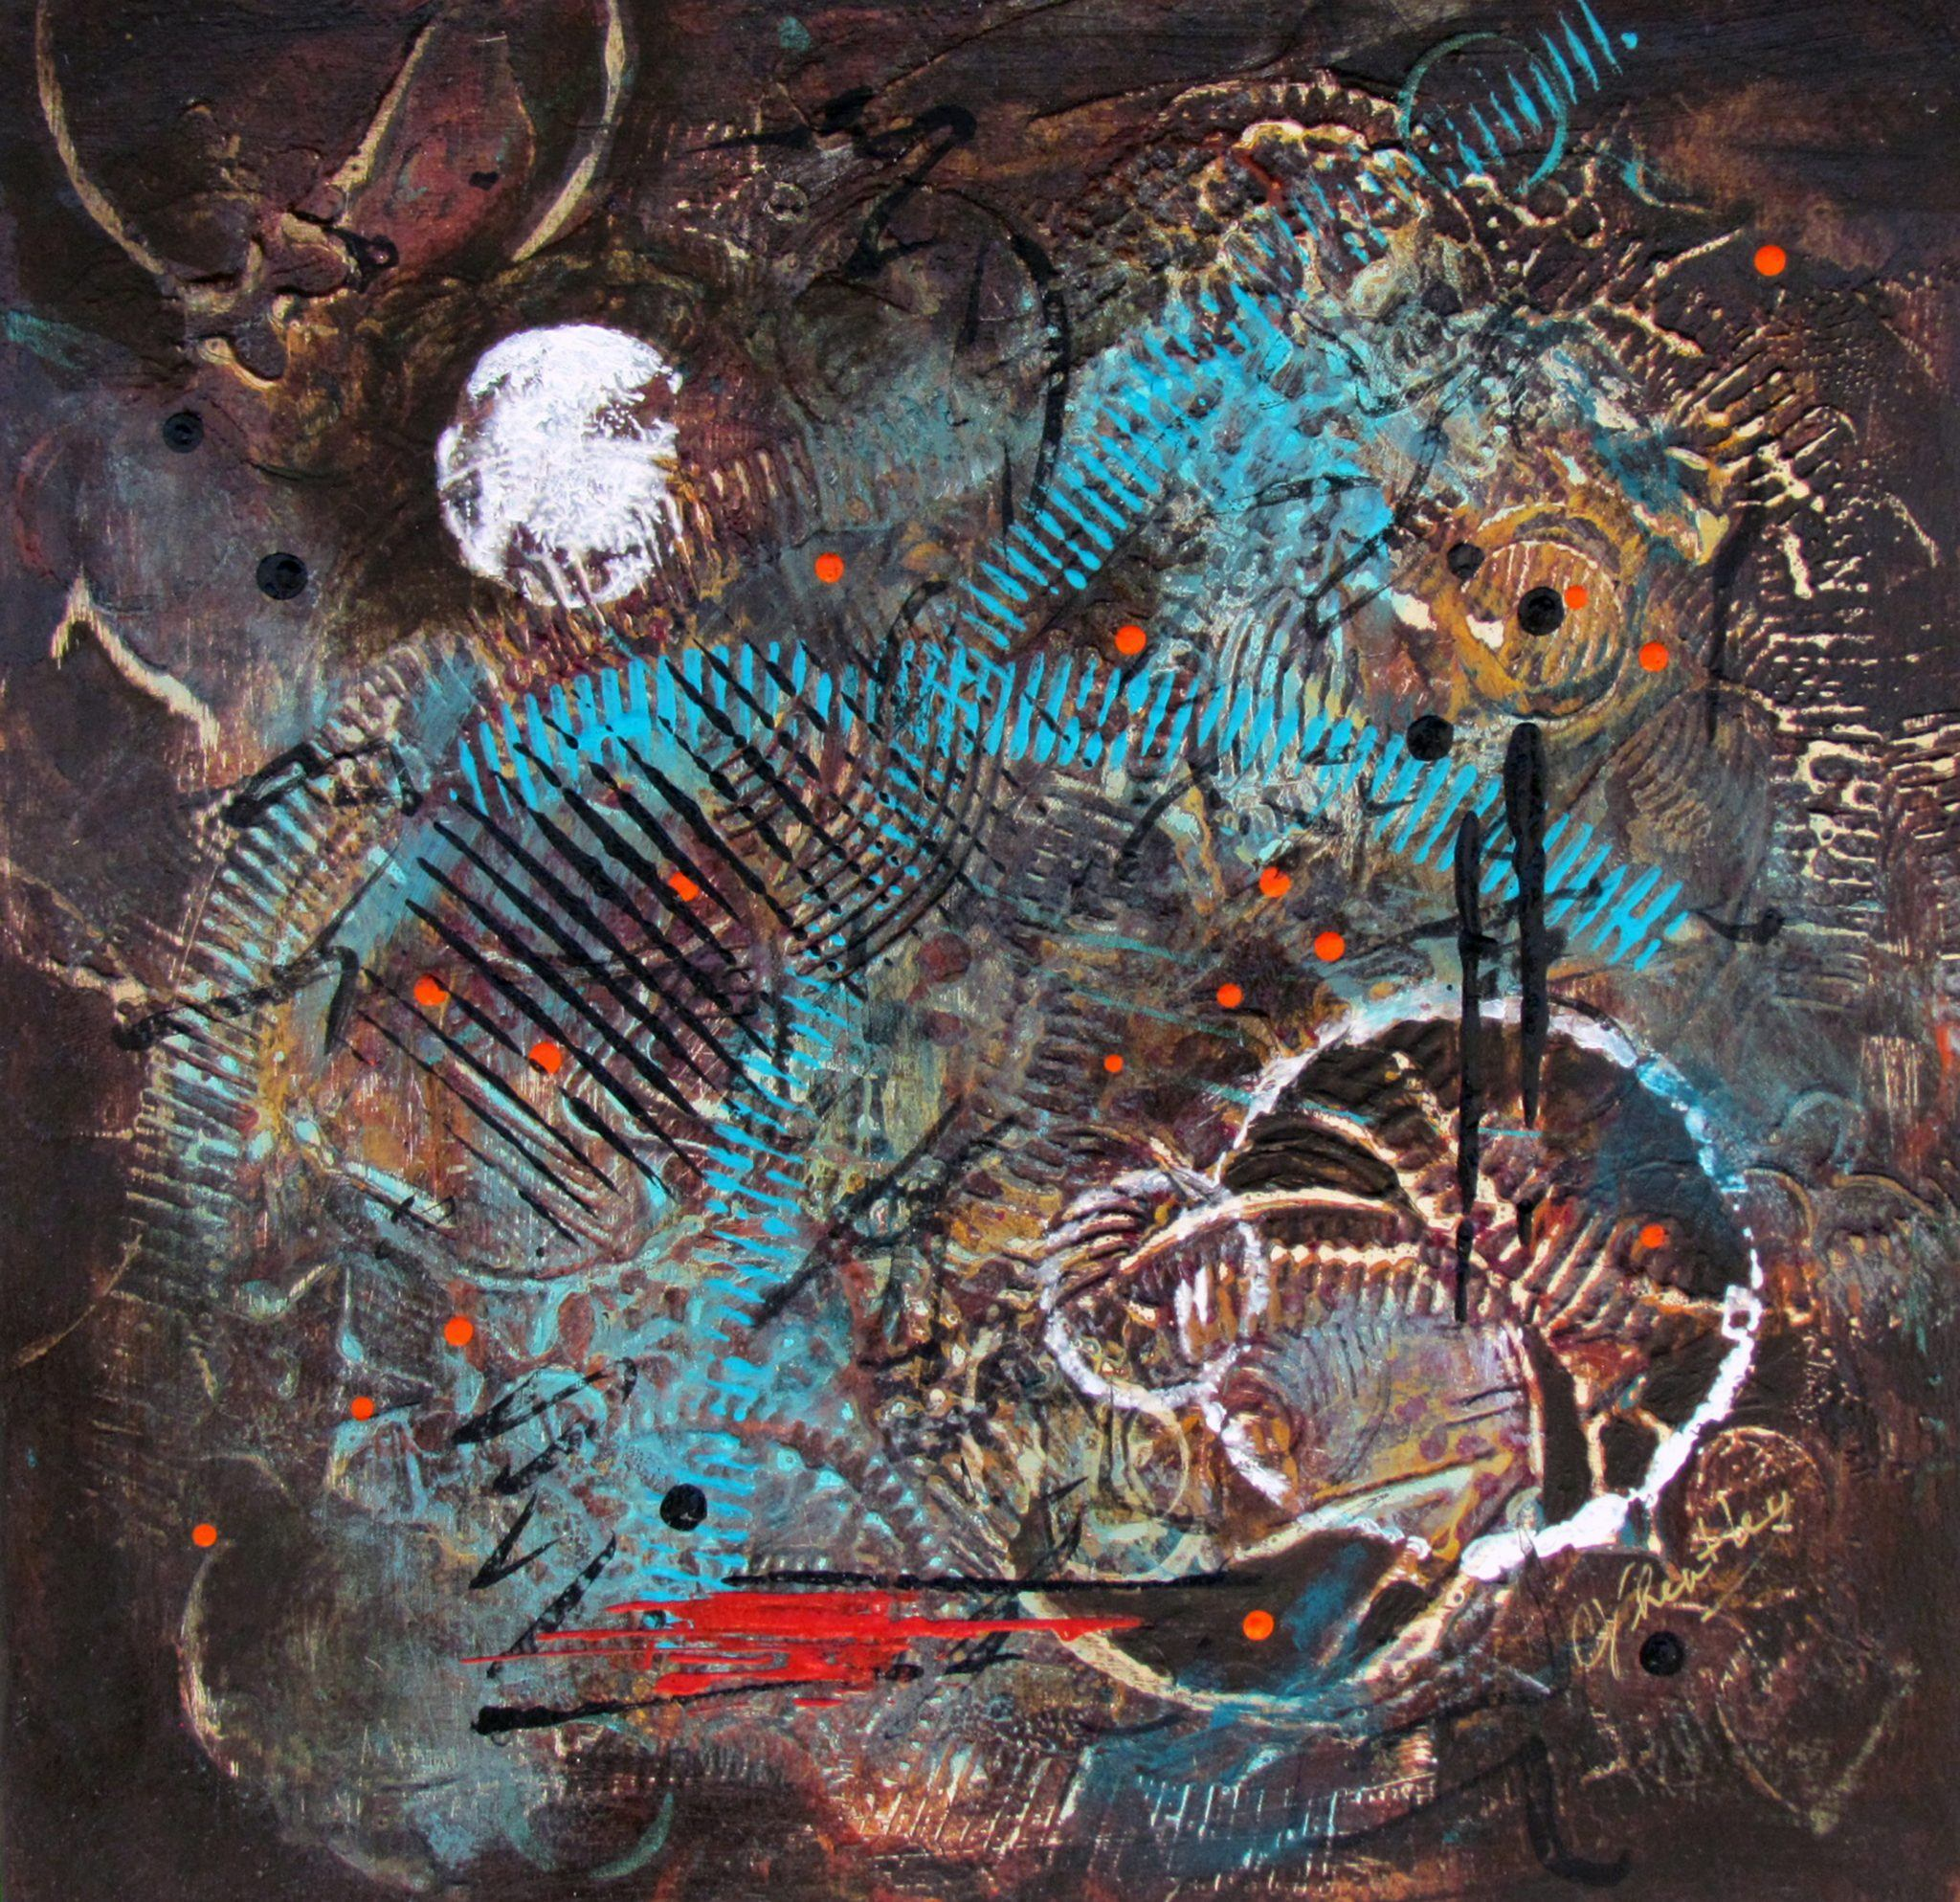 Wheatley,Helen_Unintended Consequences_Acrylic on Illustration Board_17x17